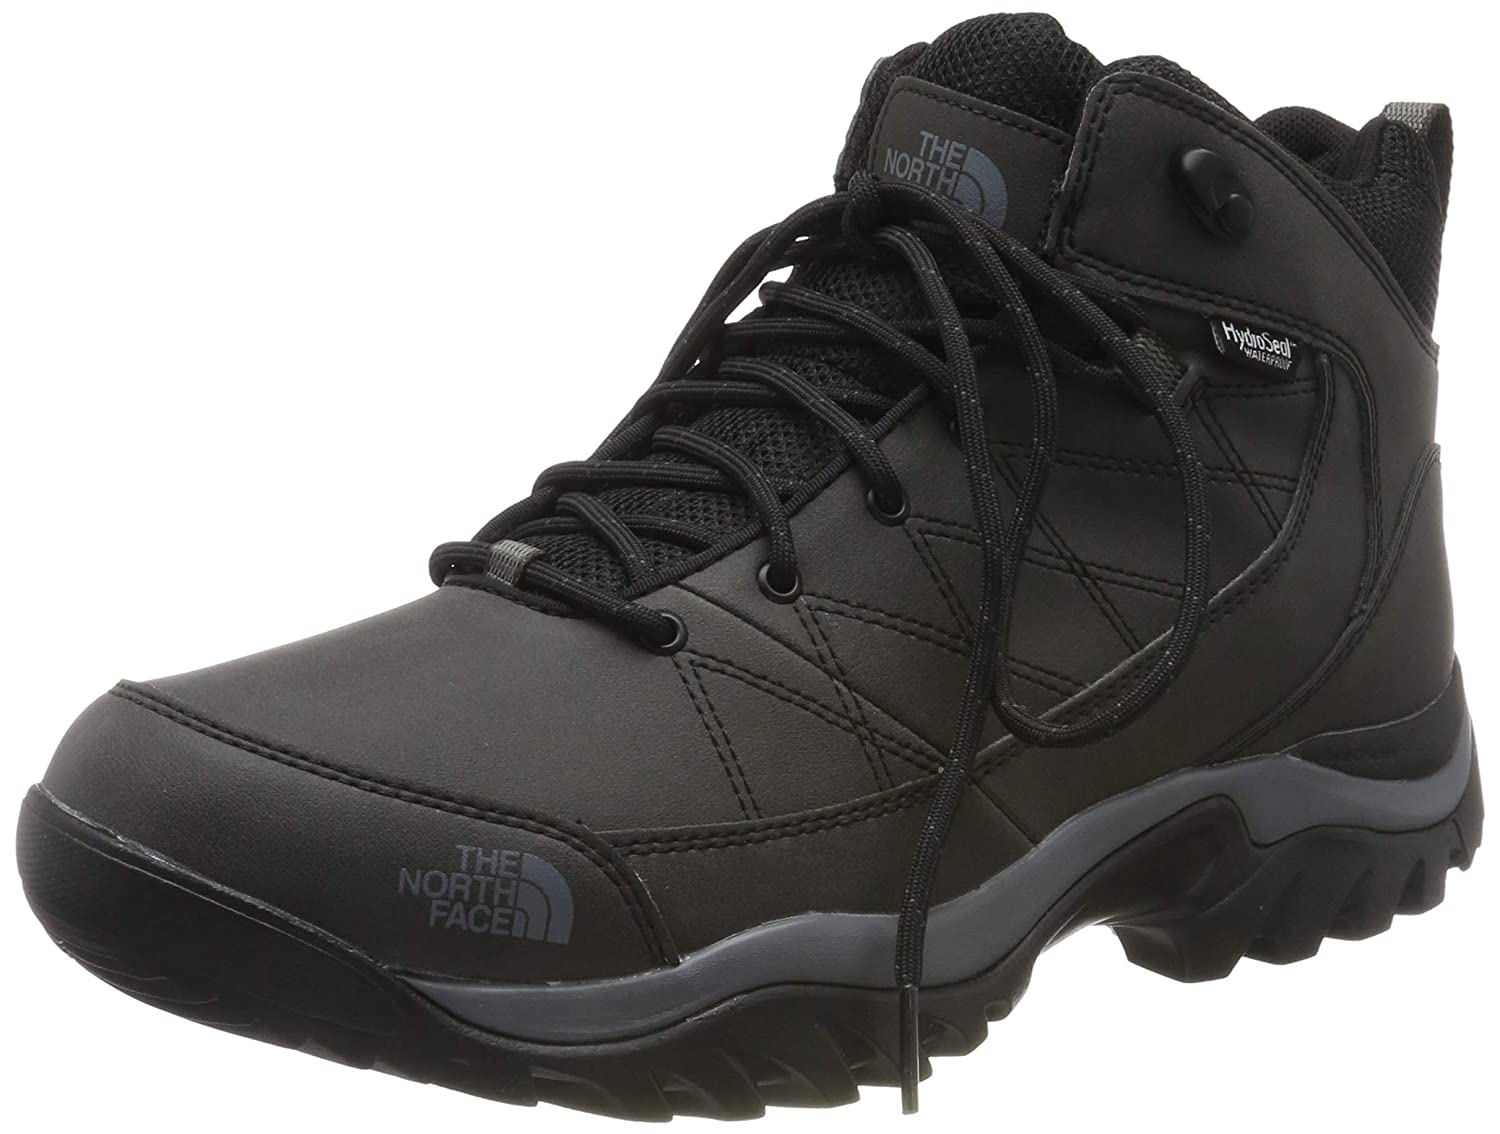 TALLA 44 EU. The North Face M Storm Strike Wp, Botas de senderismo Hombre